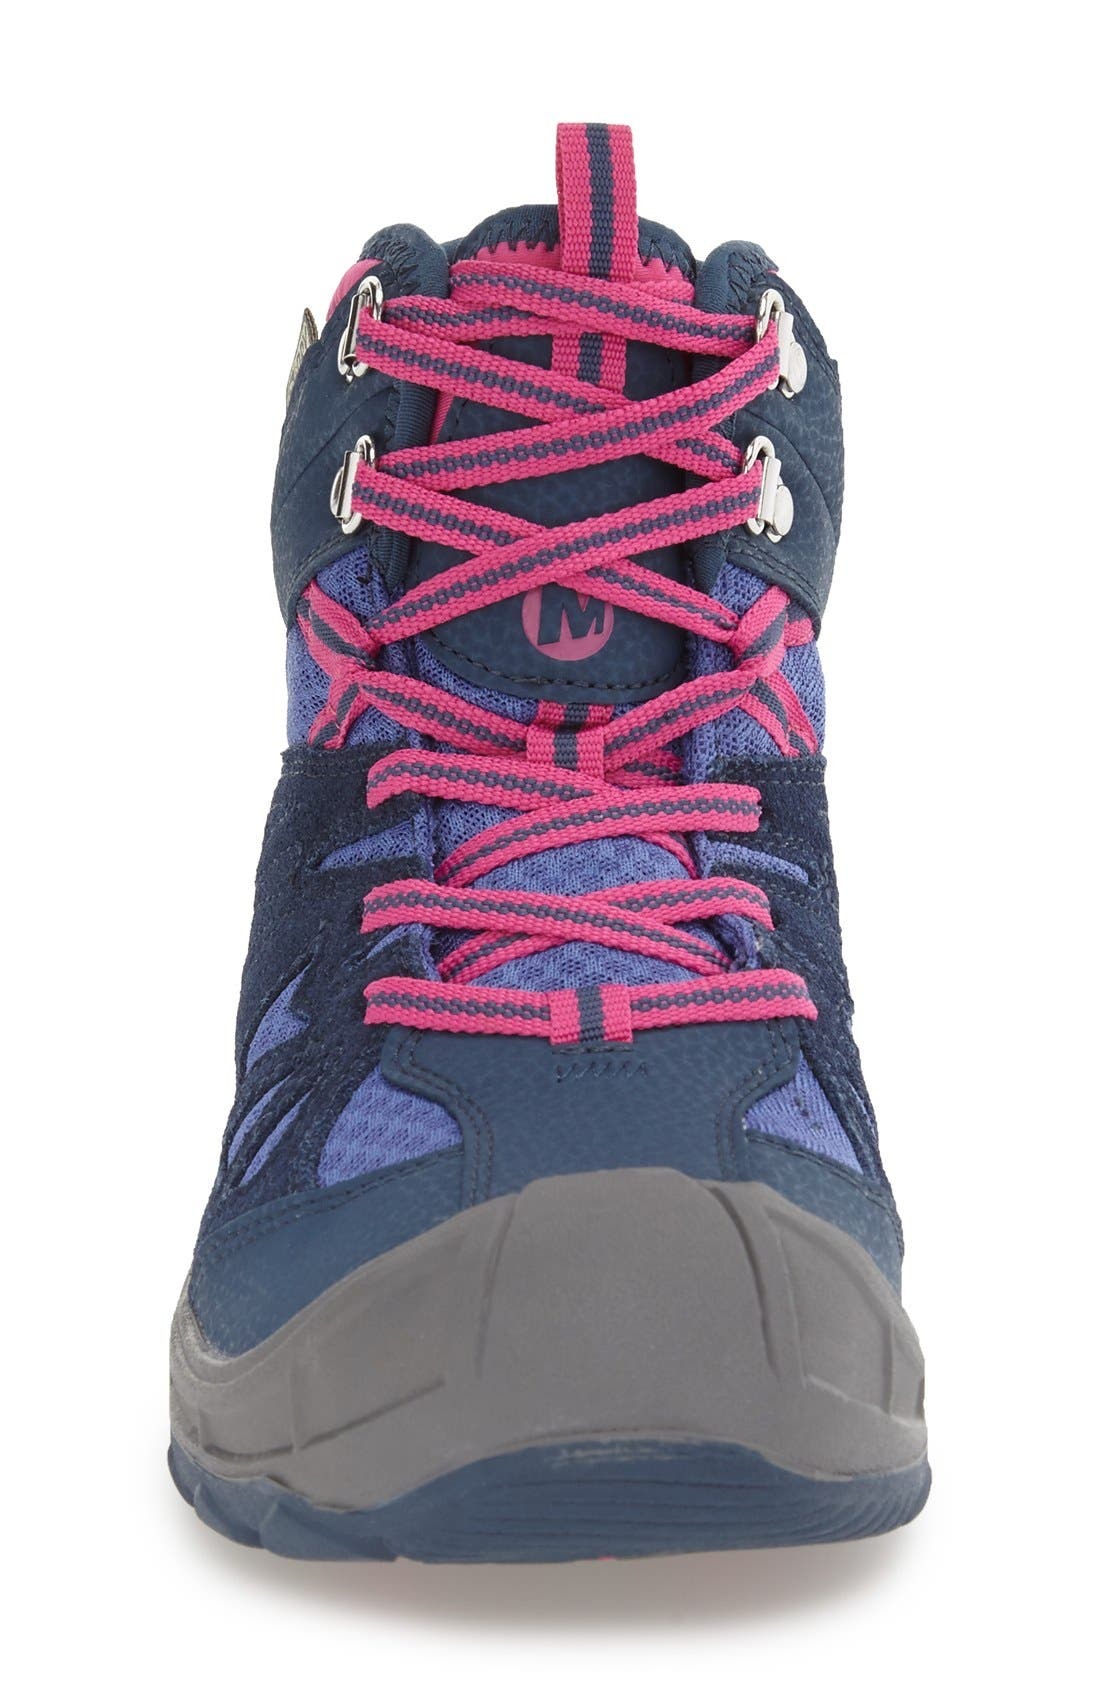 'Capra' Mid Waterproof Hiking Shoe,                             Alternate thumbnail 6, color,